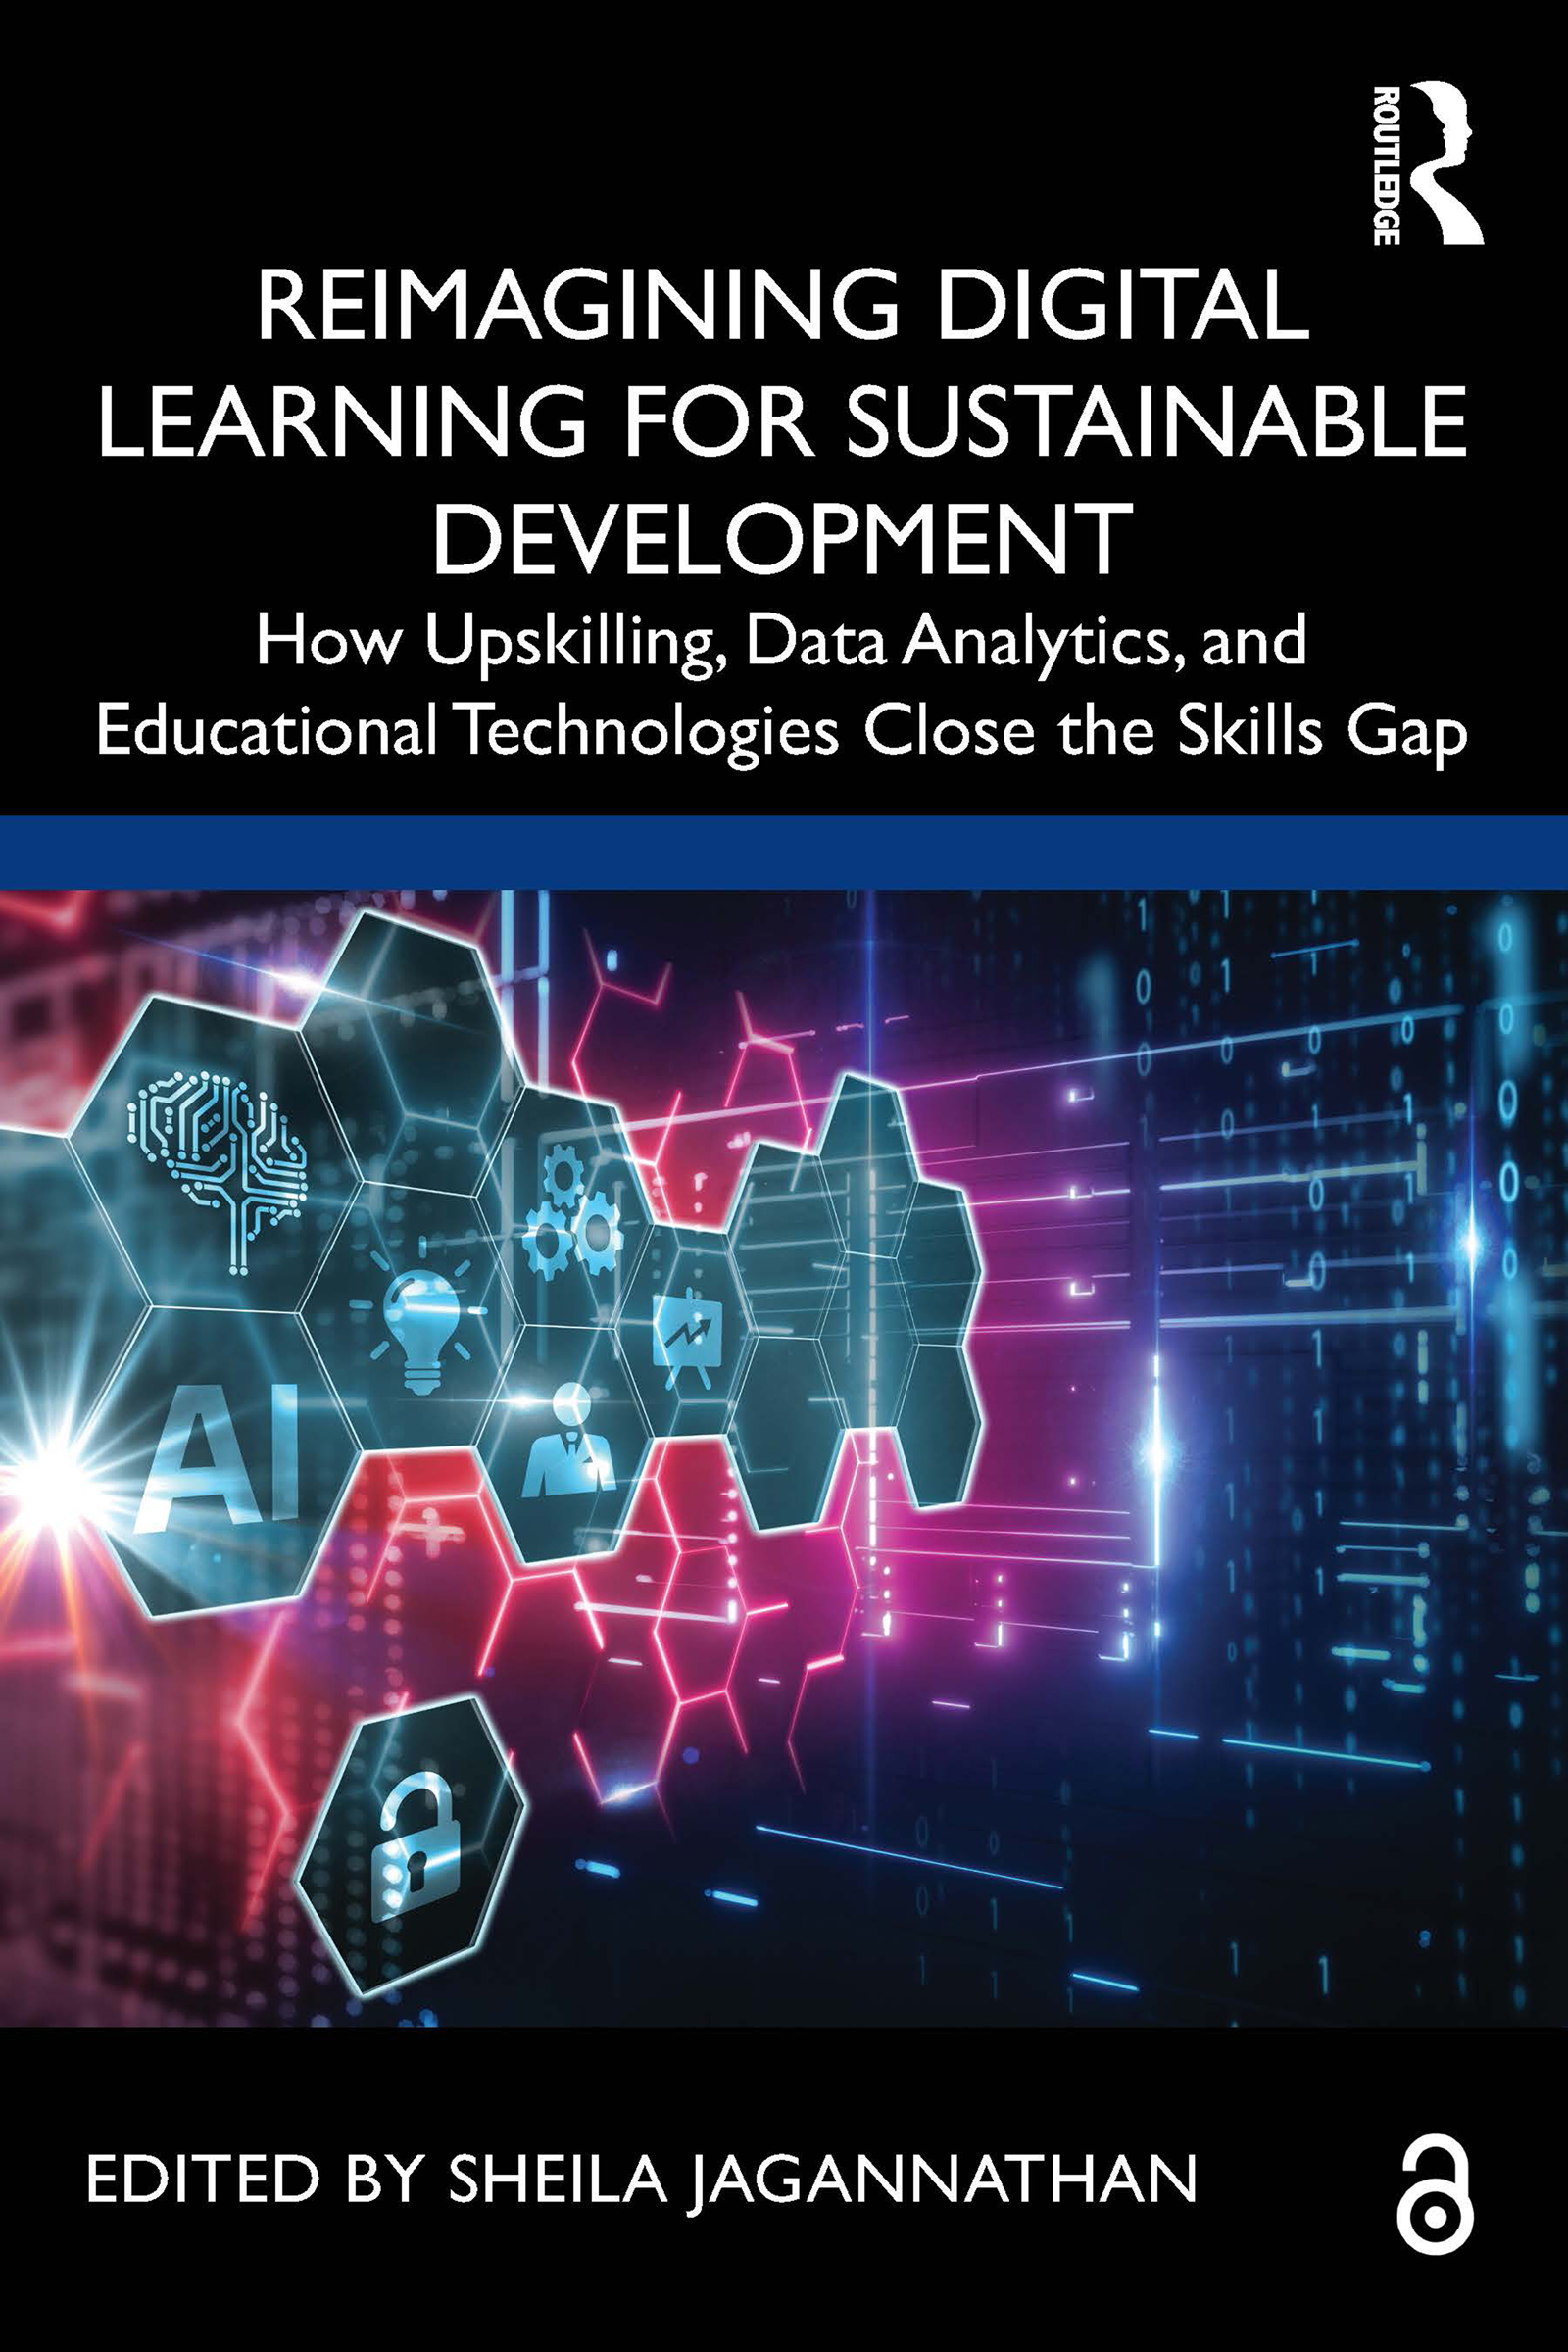 The Digital Learning Opportunity